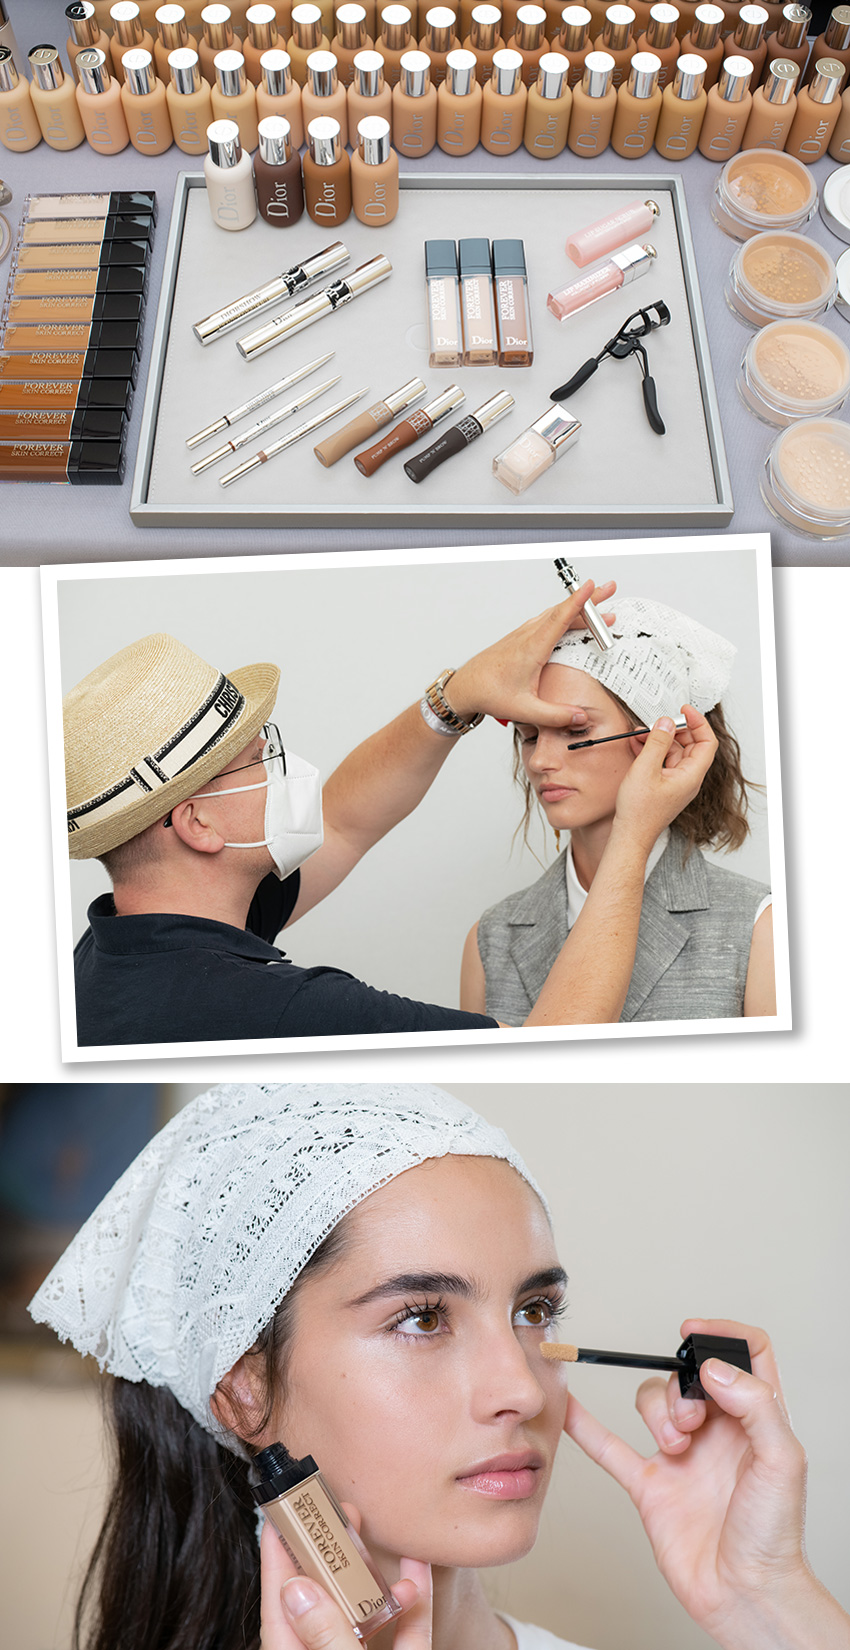 Dior Makeup Cruise 2021 Dior show in Lecce, Pugli as featured in Perfect wedding Magazineshow